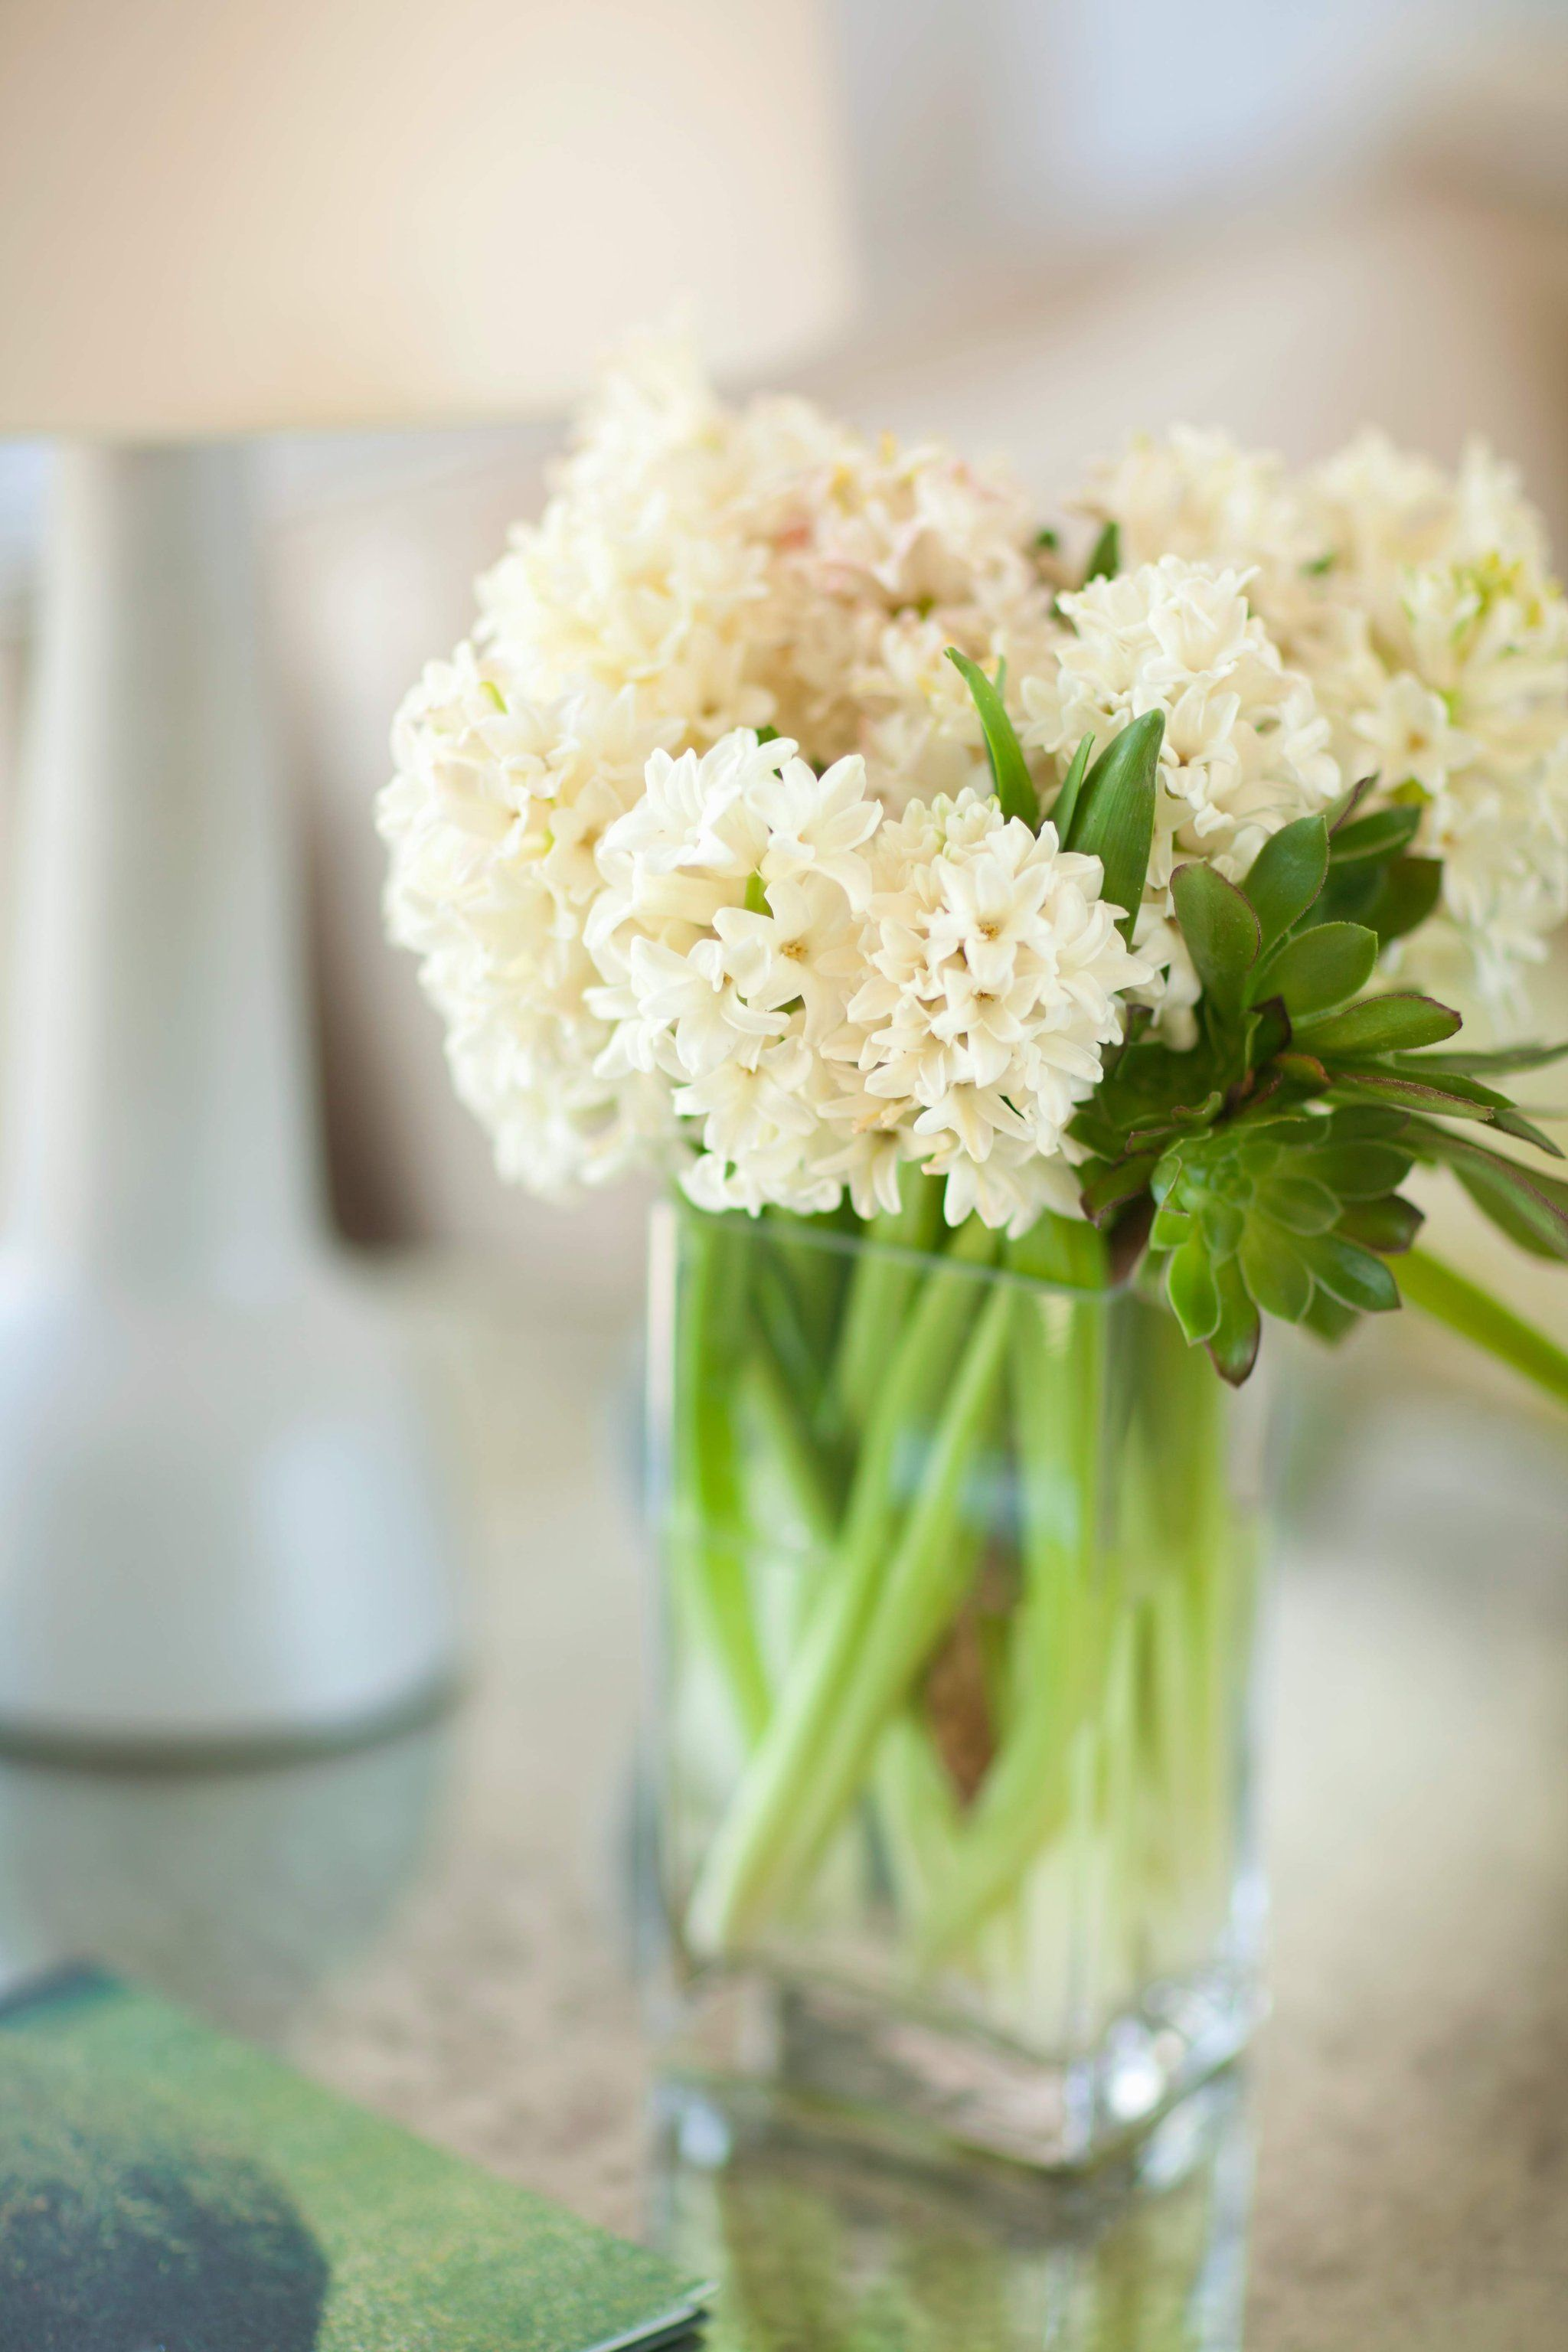 Birth flowers are a real thing and you need to know the